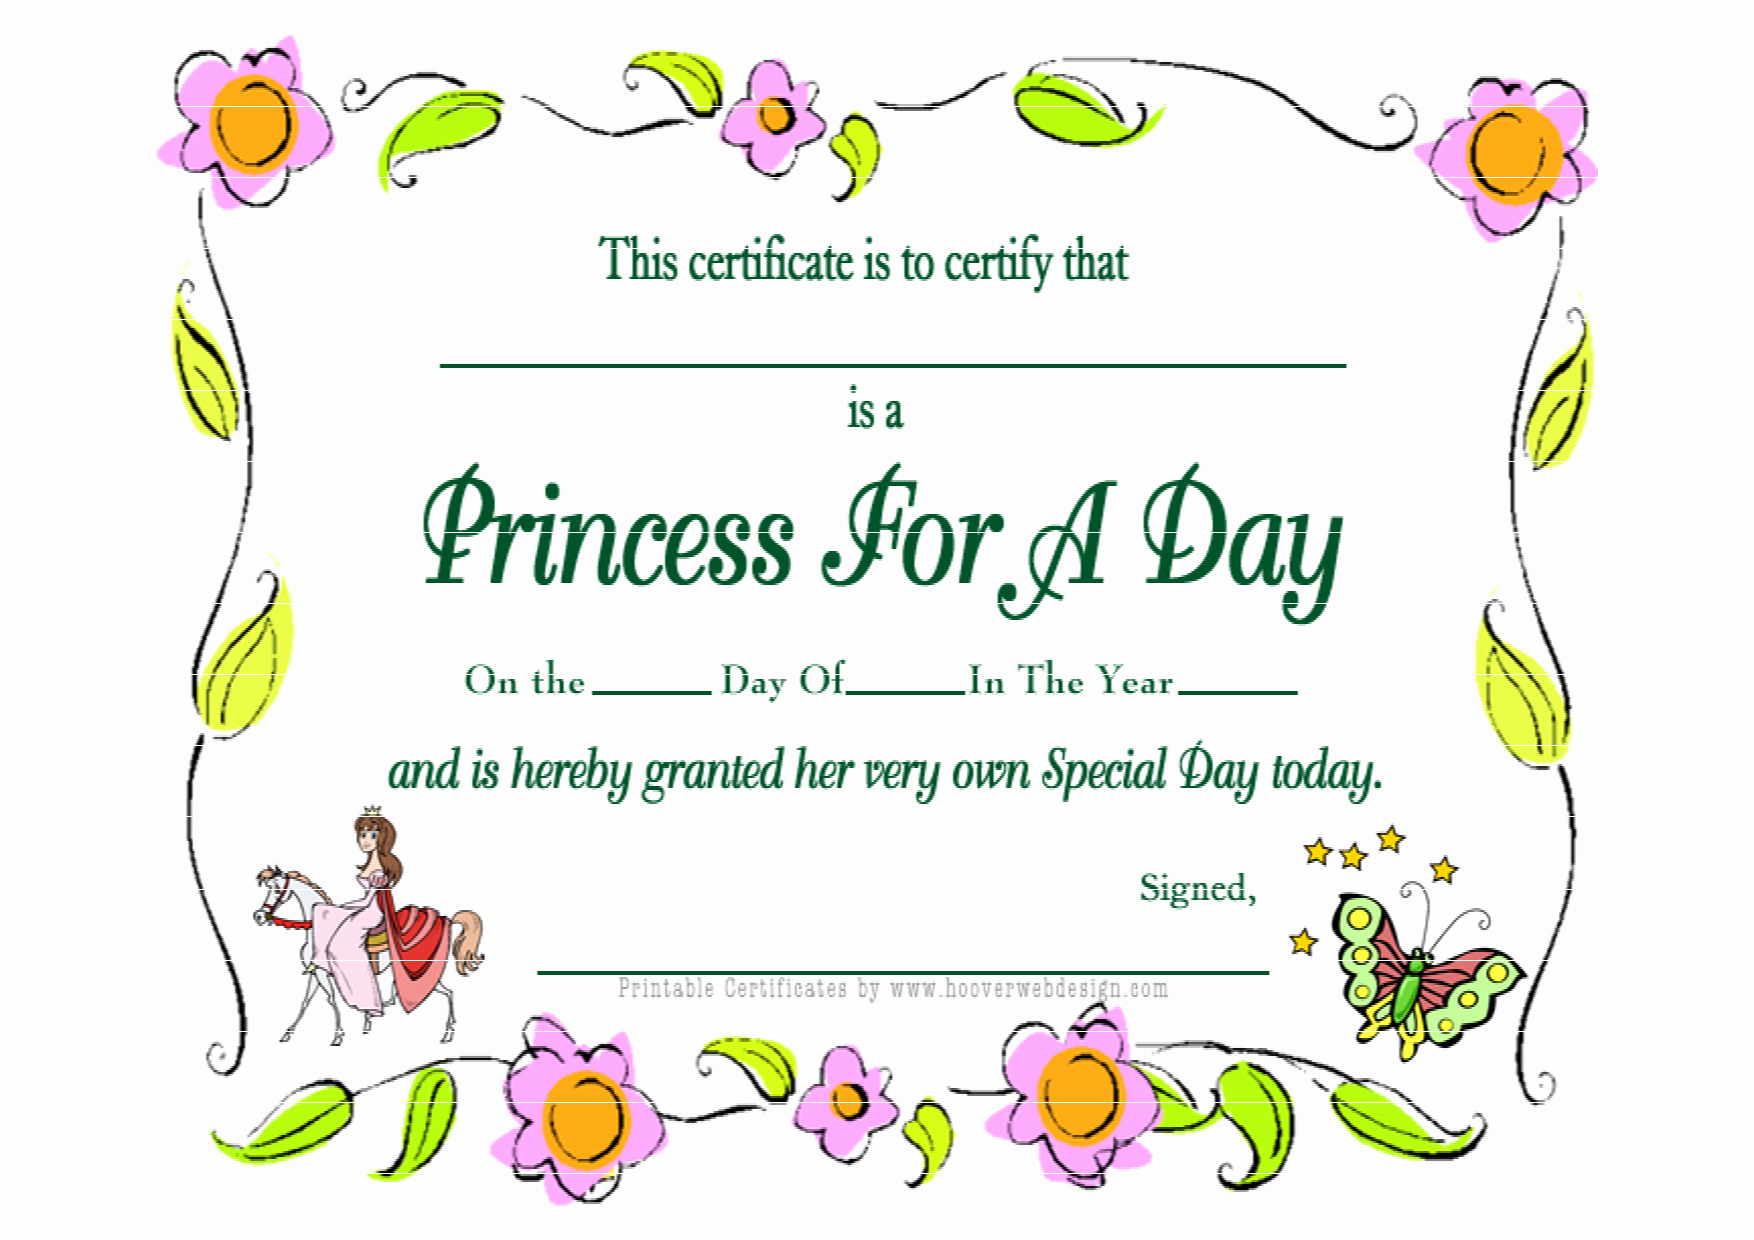 Disney Gift Certificate Template Fresh Pin On Idea S for Sissy